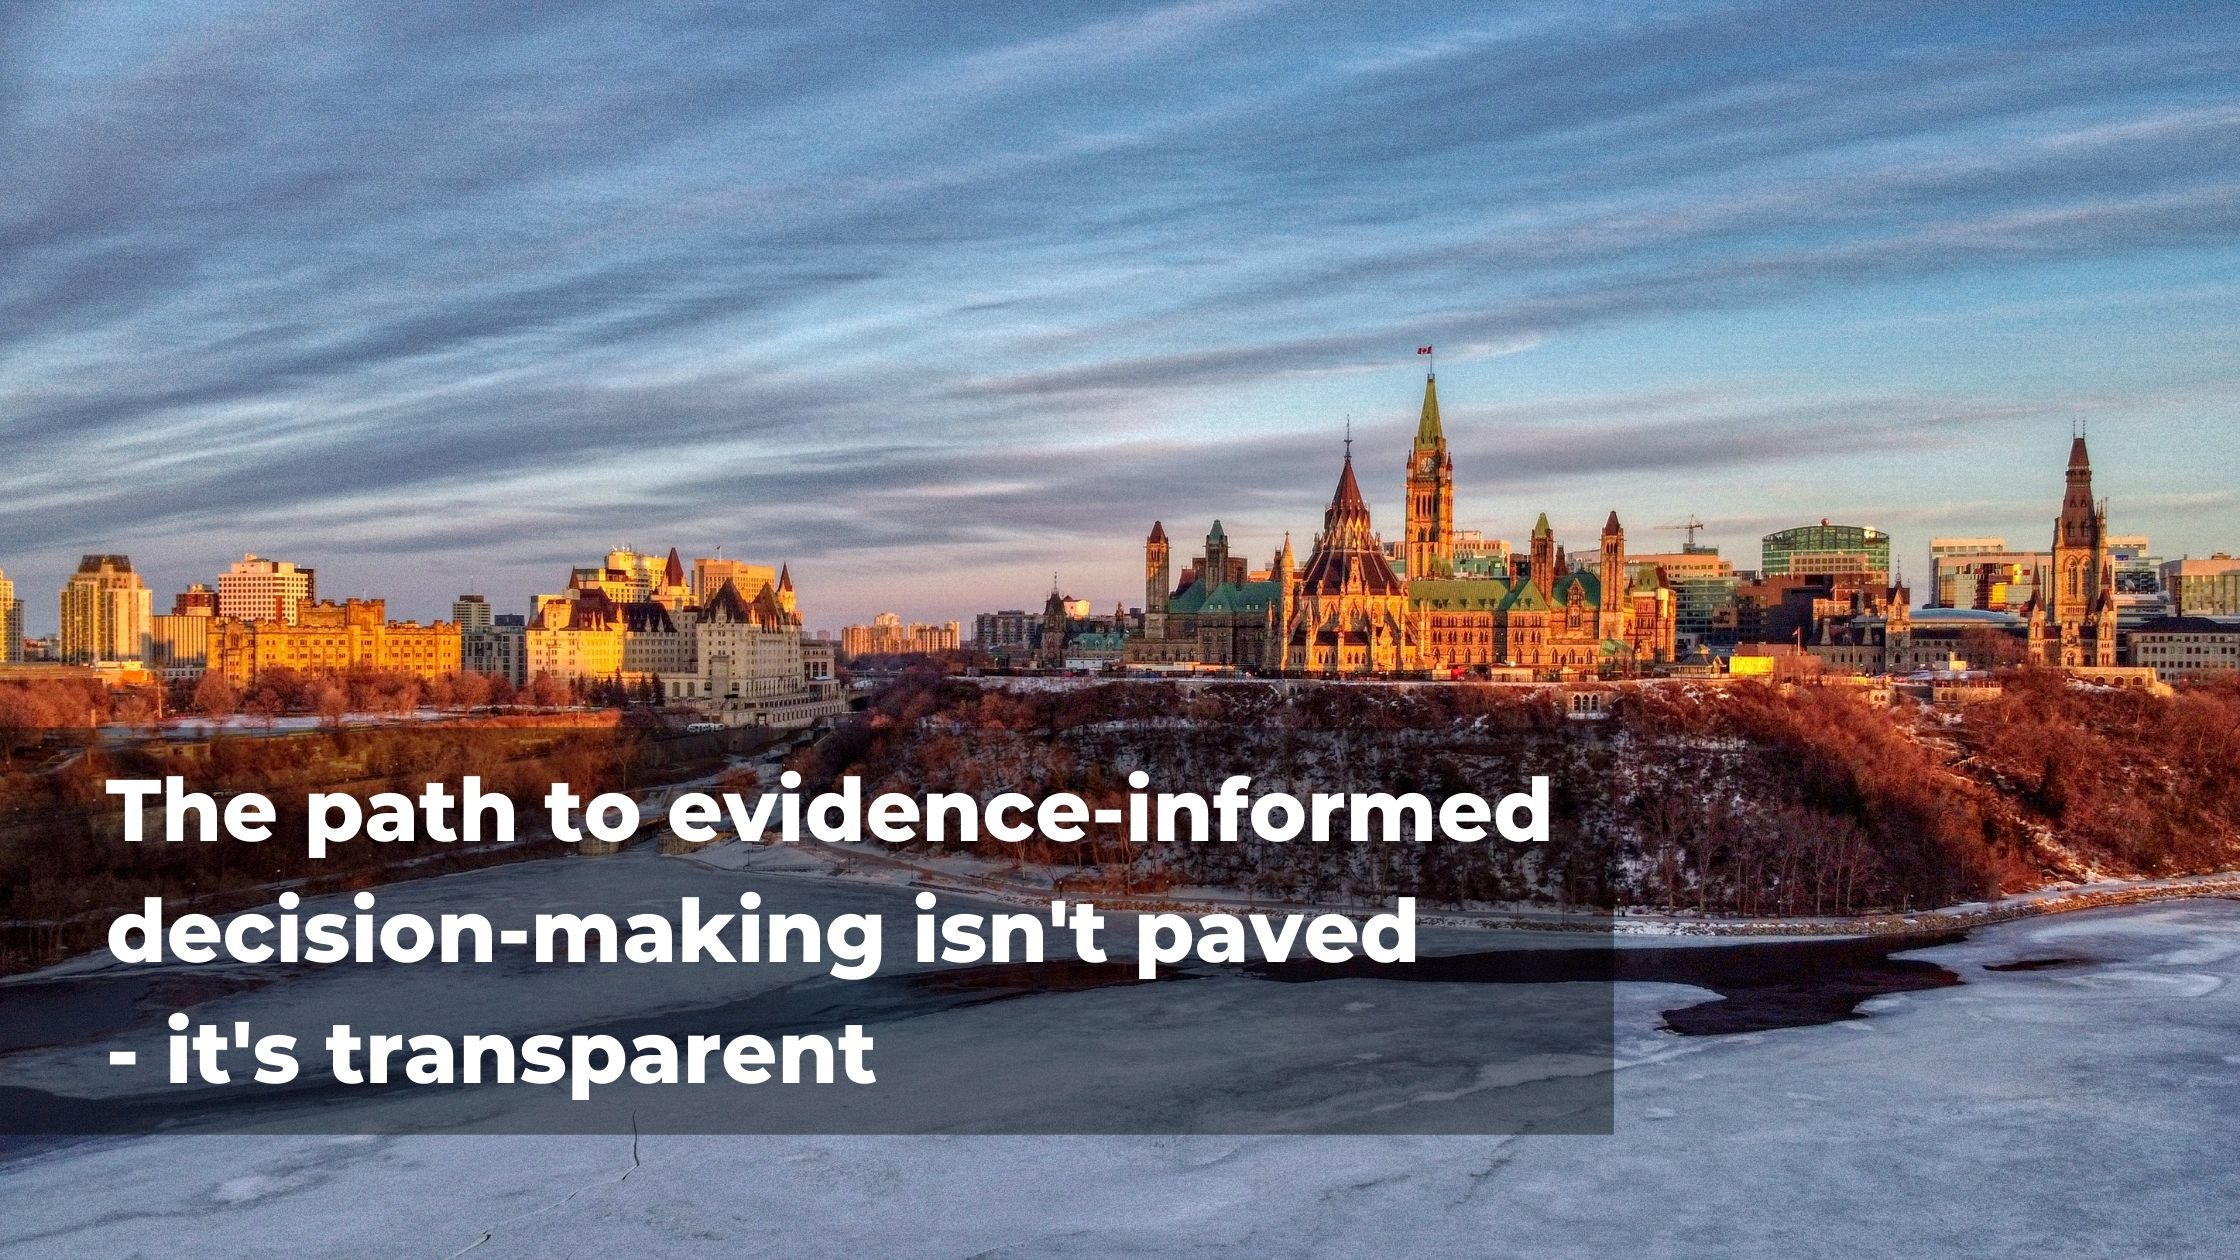 The path to evidence-informed decision-making isn't paved - it's transparent